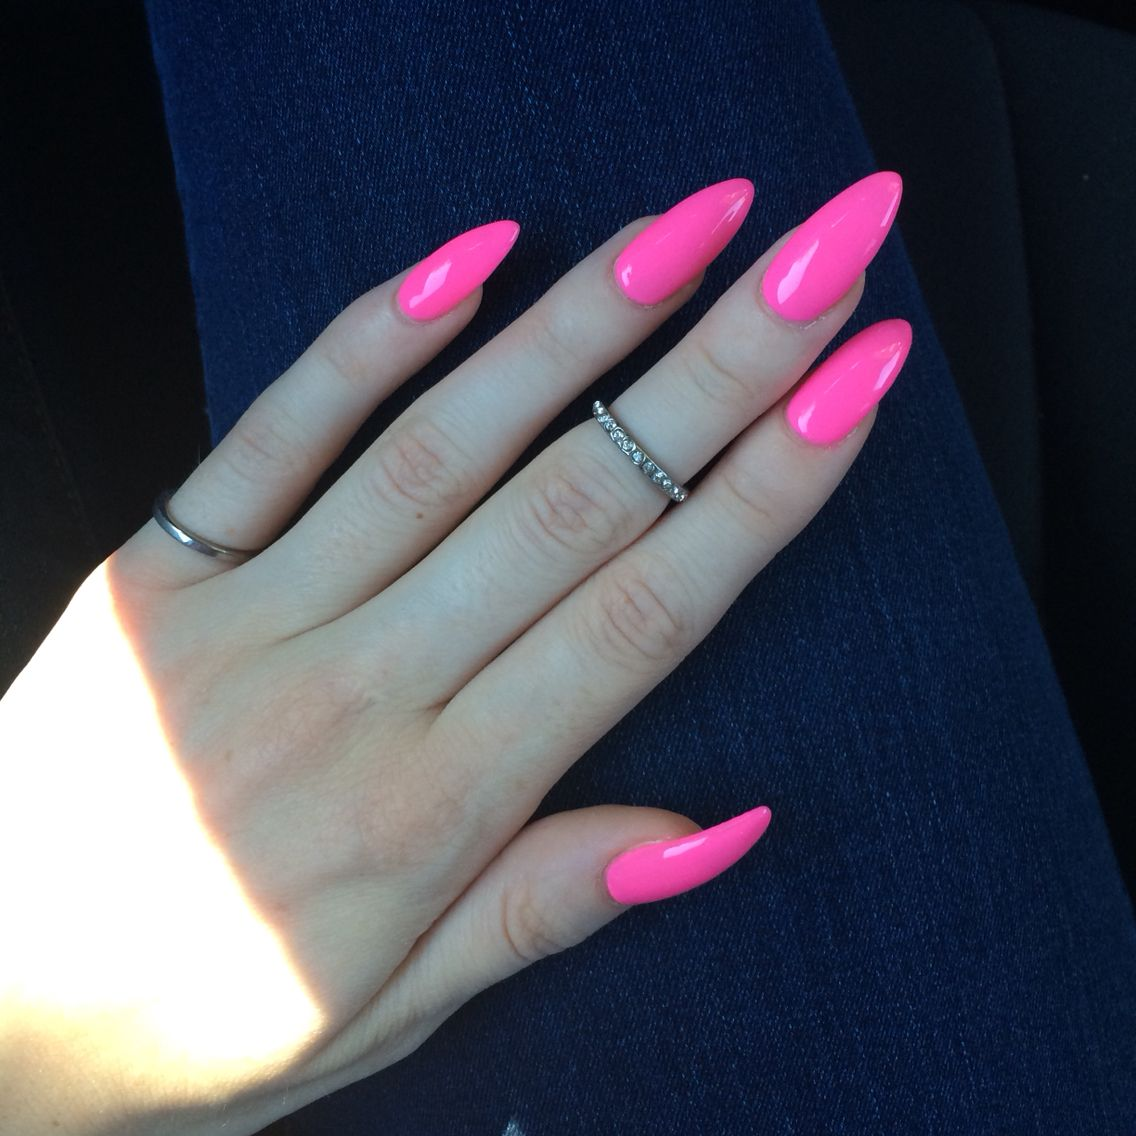 My Nails Barbie Pink Nails Hot Pink Nails Pink Nails